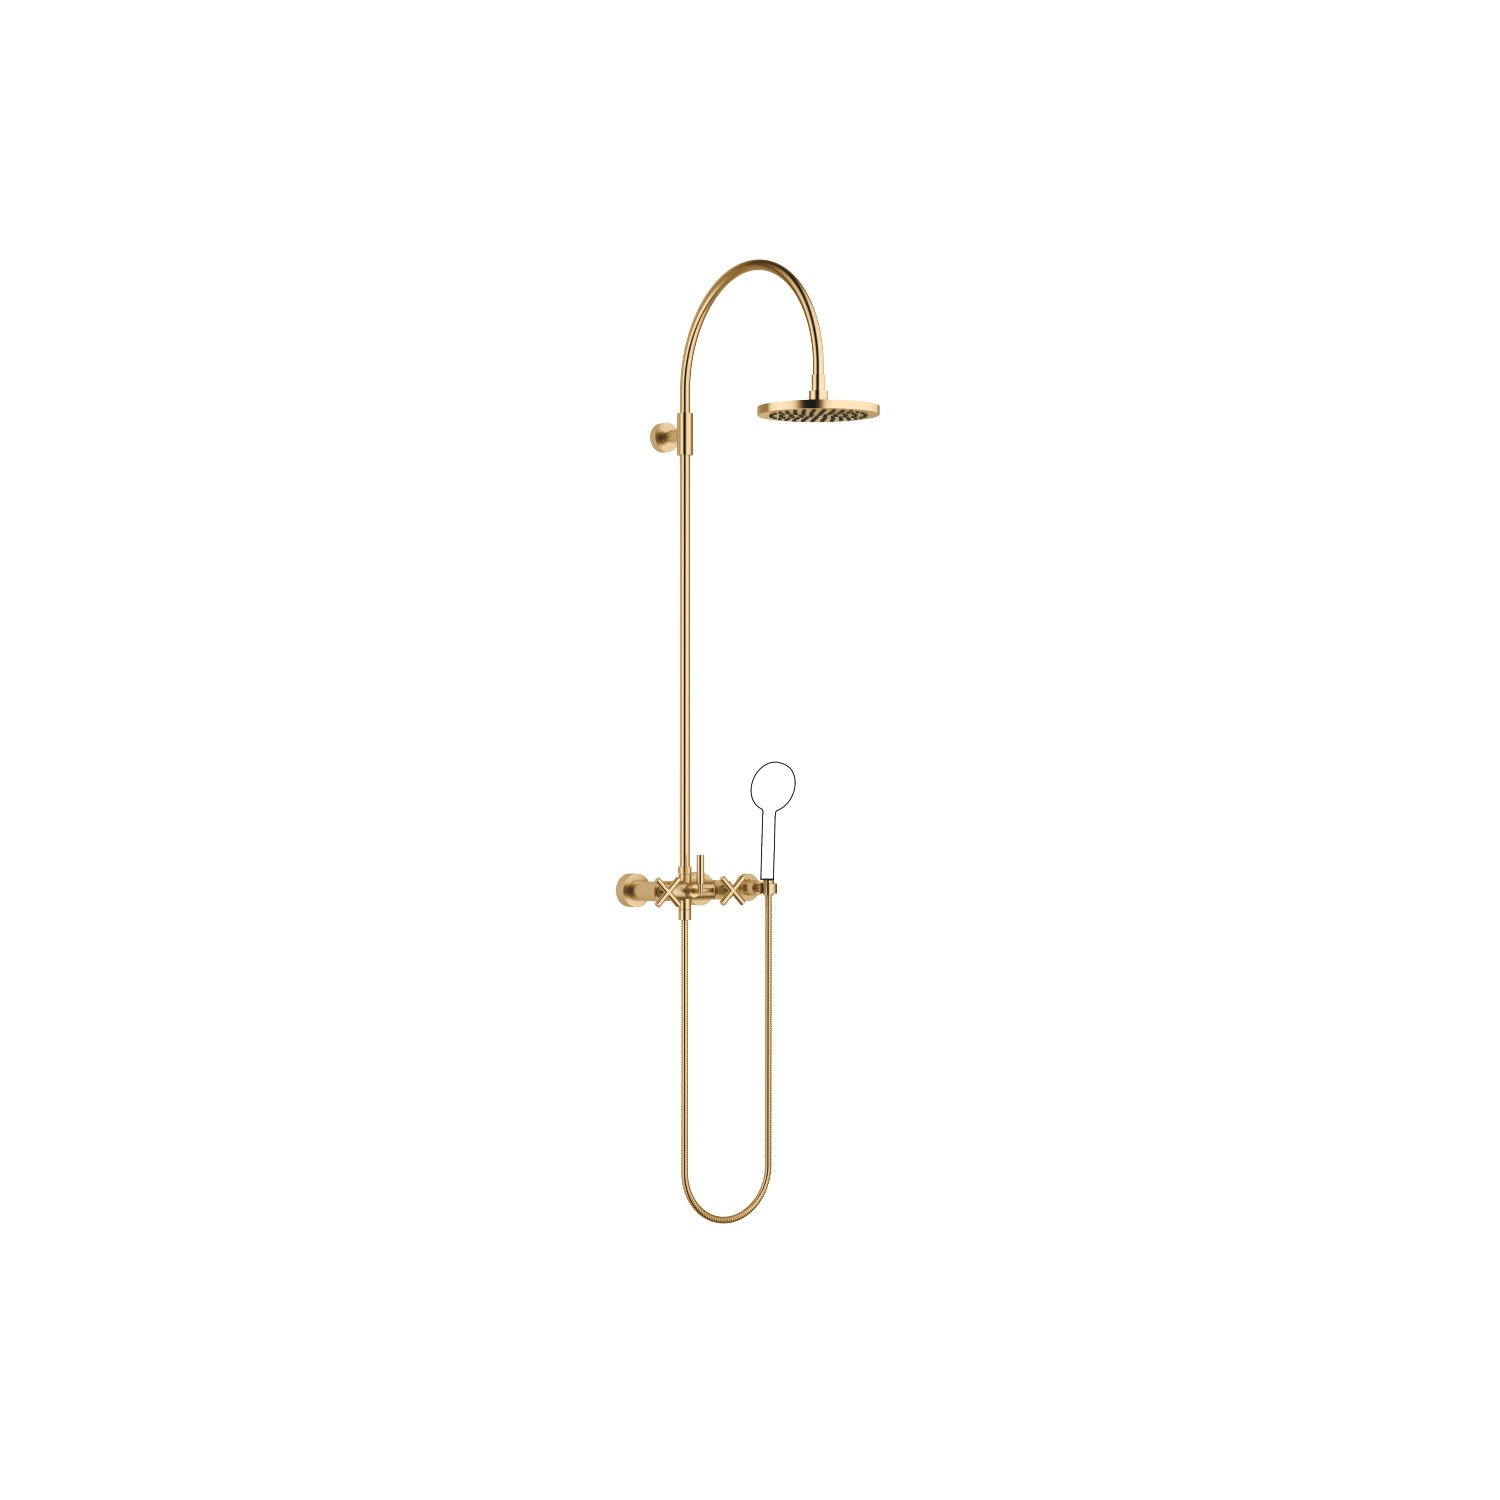 Showerpipe with shower mixer without hand shower - brushed Durabrass